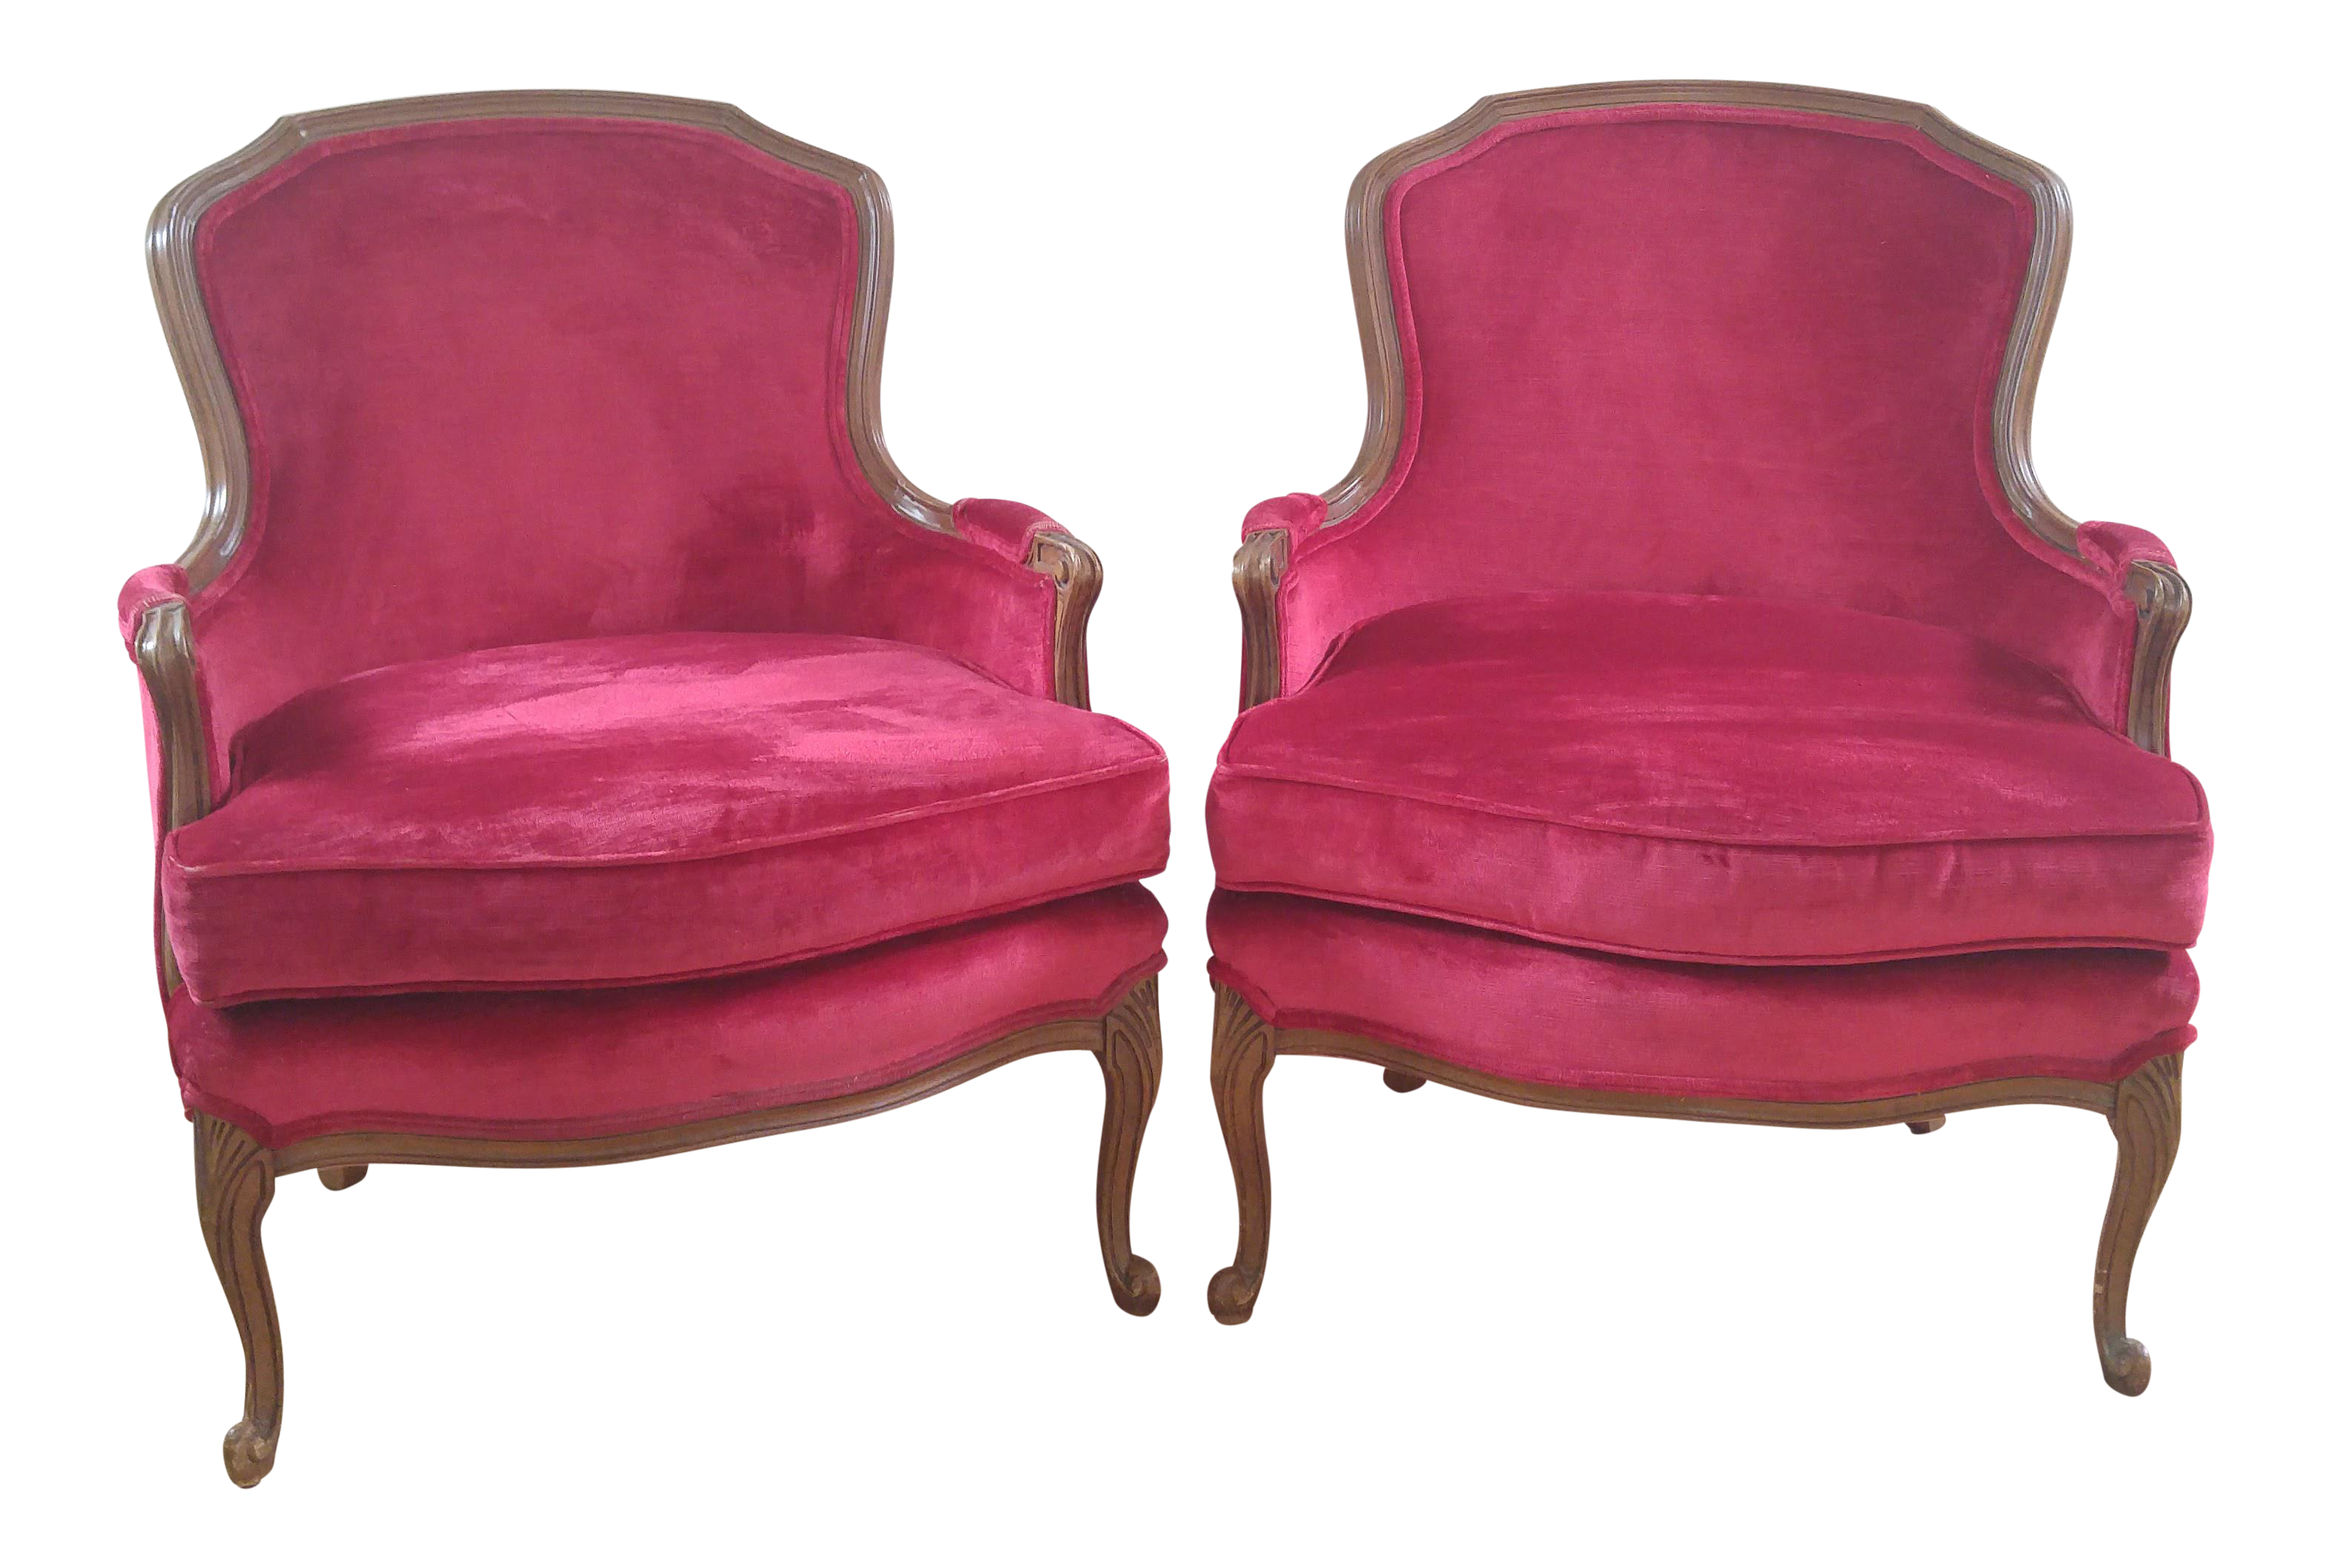 Red velvet chair - W J Sloane French Provincial Raspberry Red Velvet Chairs A Pair Chairish